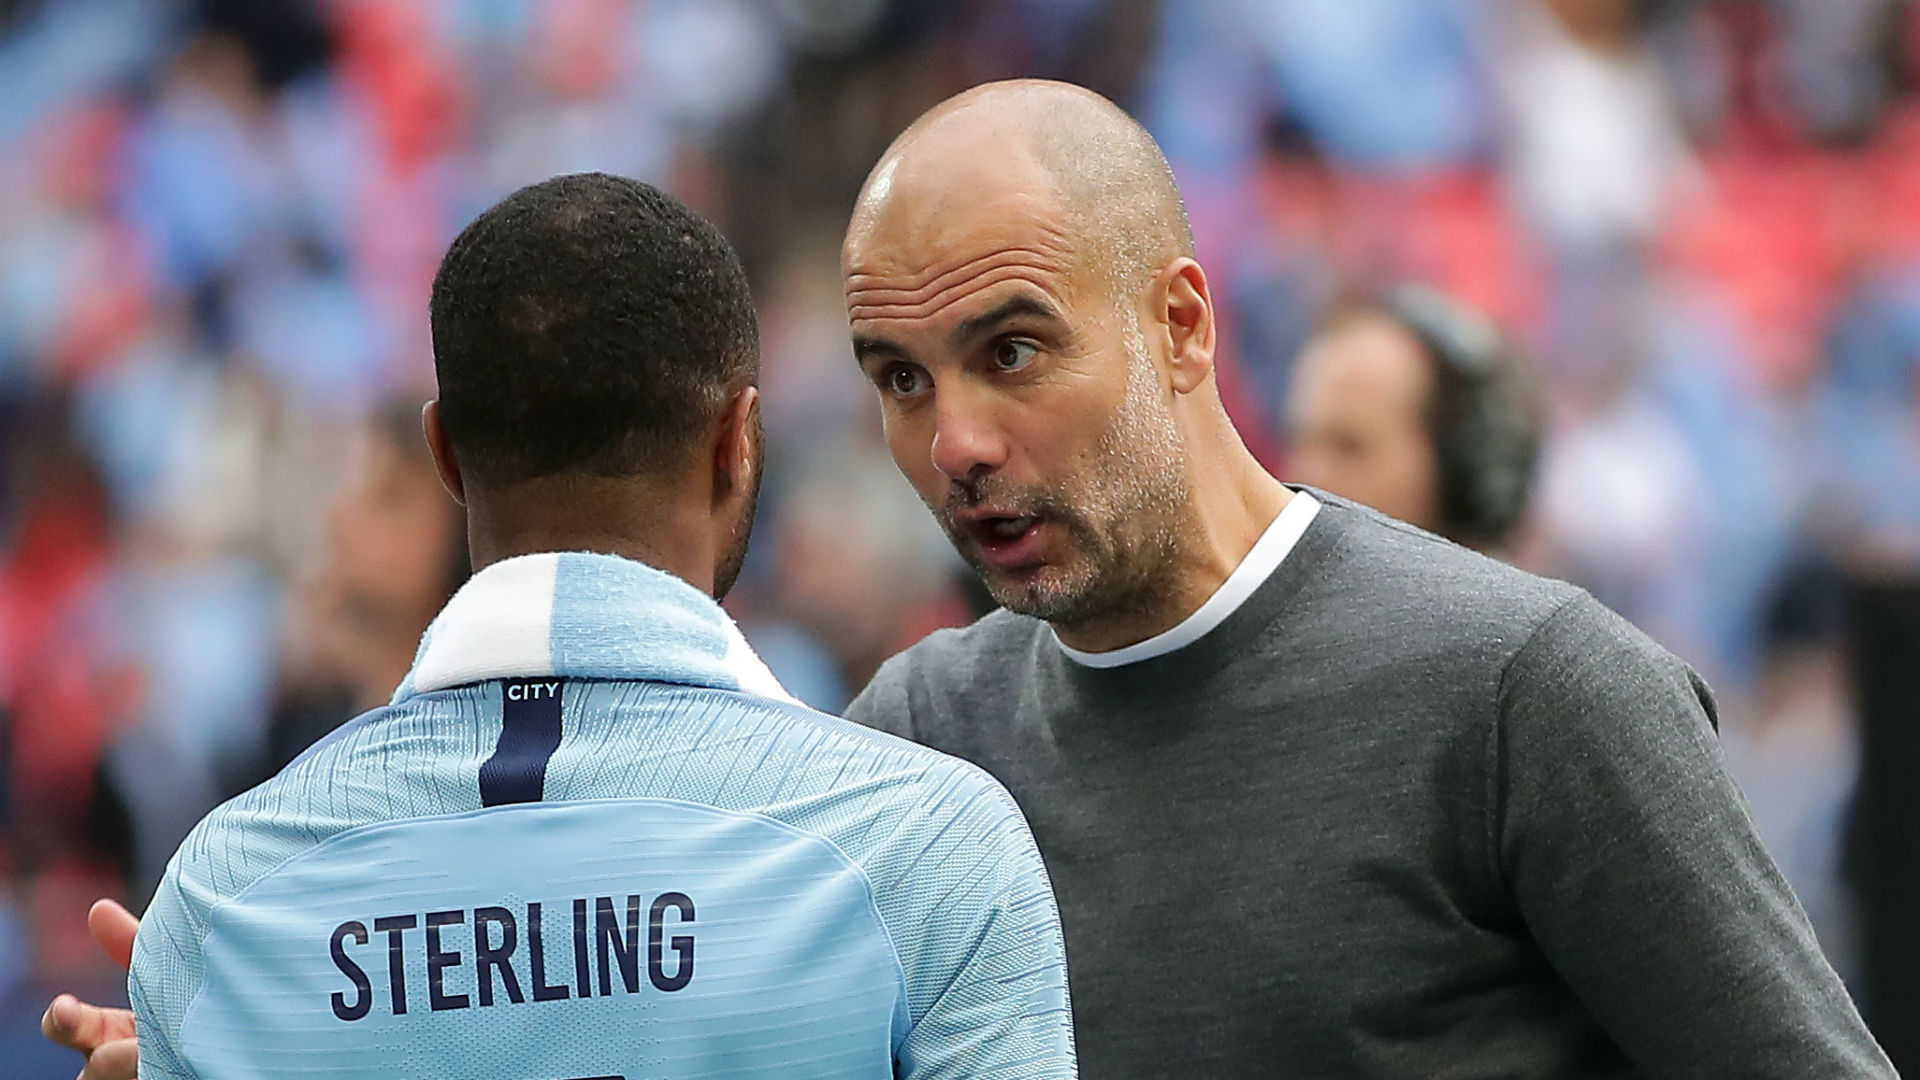 Sterling can reach same level as Messi and Ronaldo, says Man City boss Guardiola